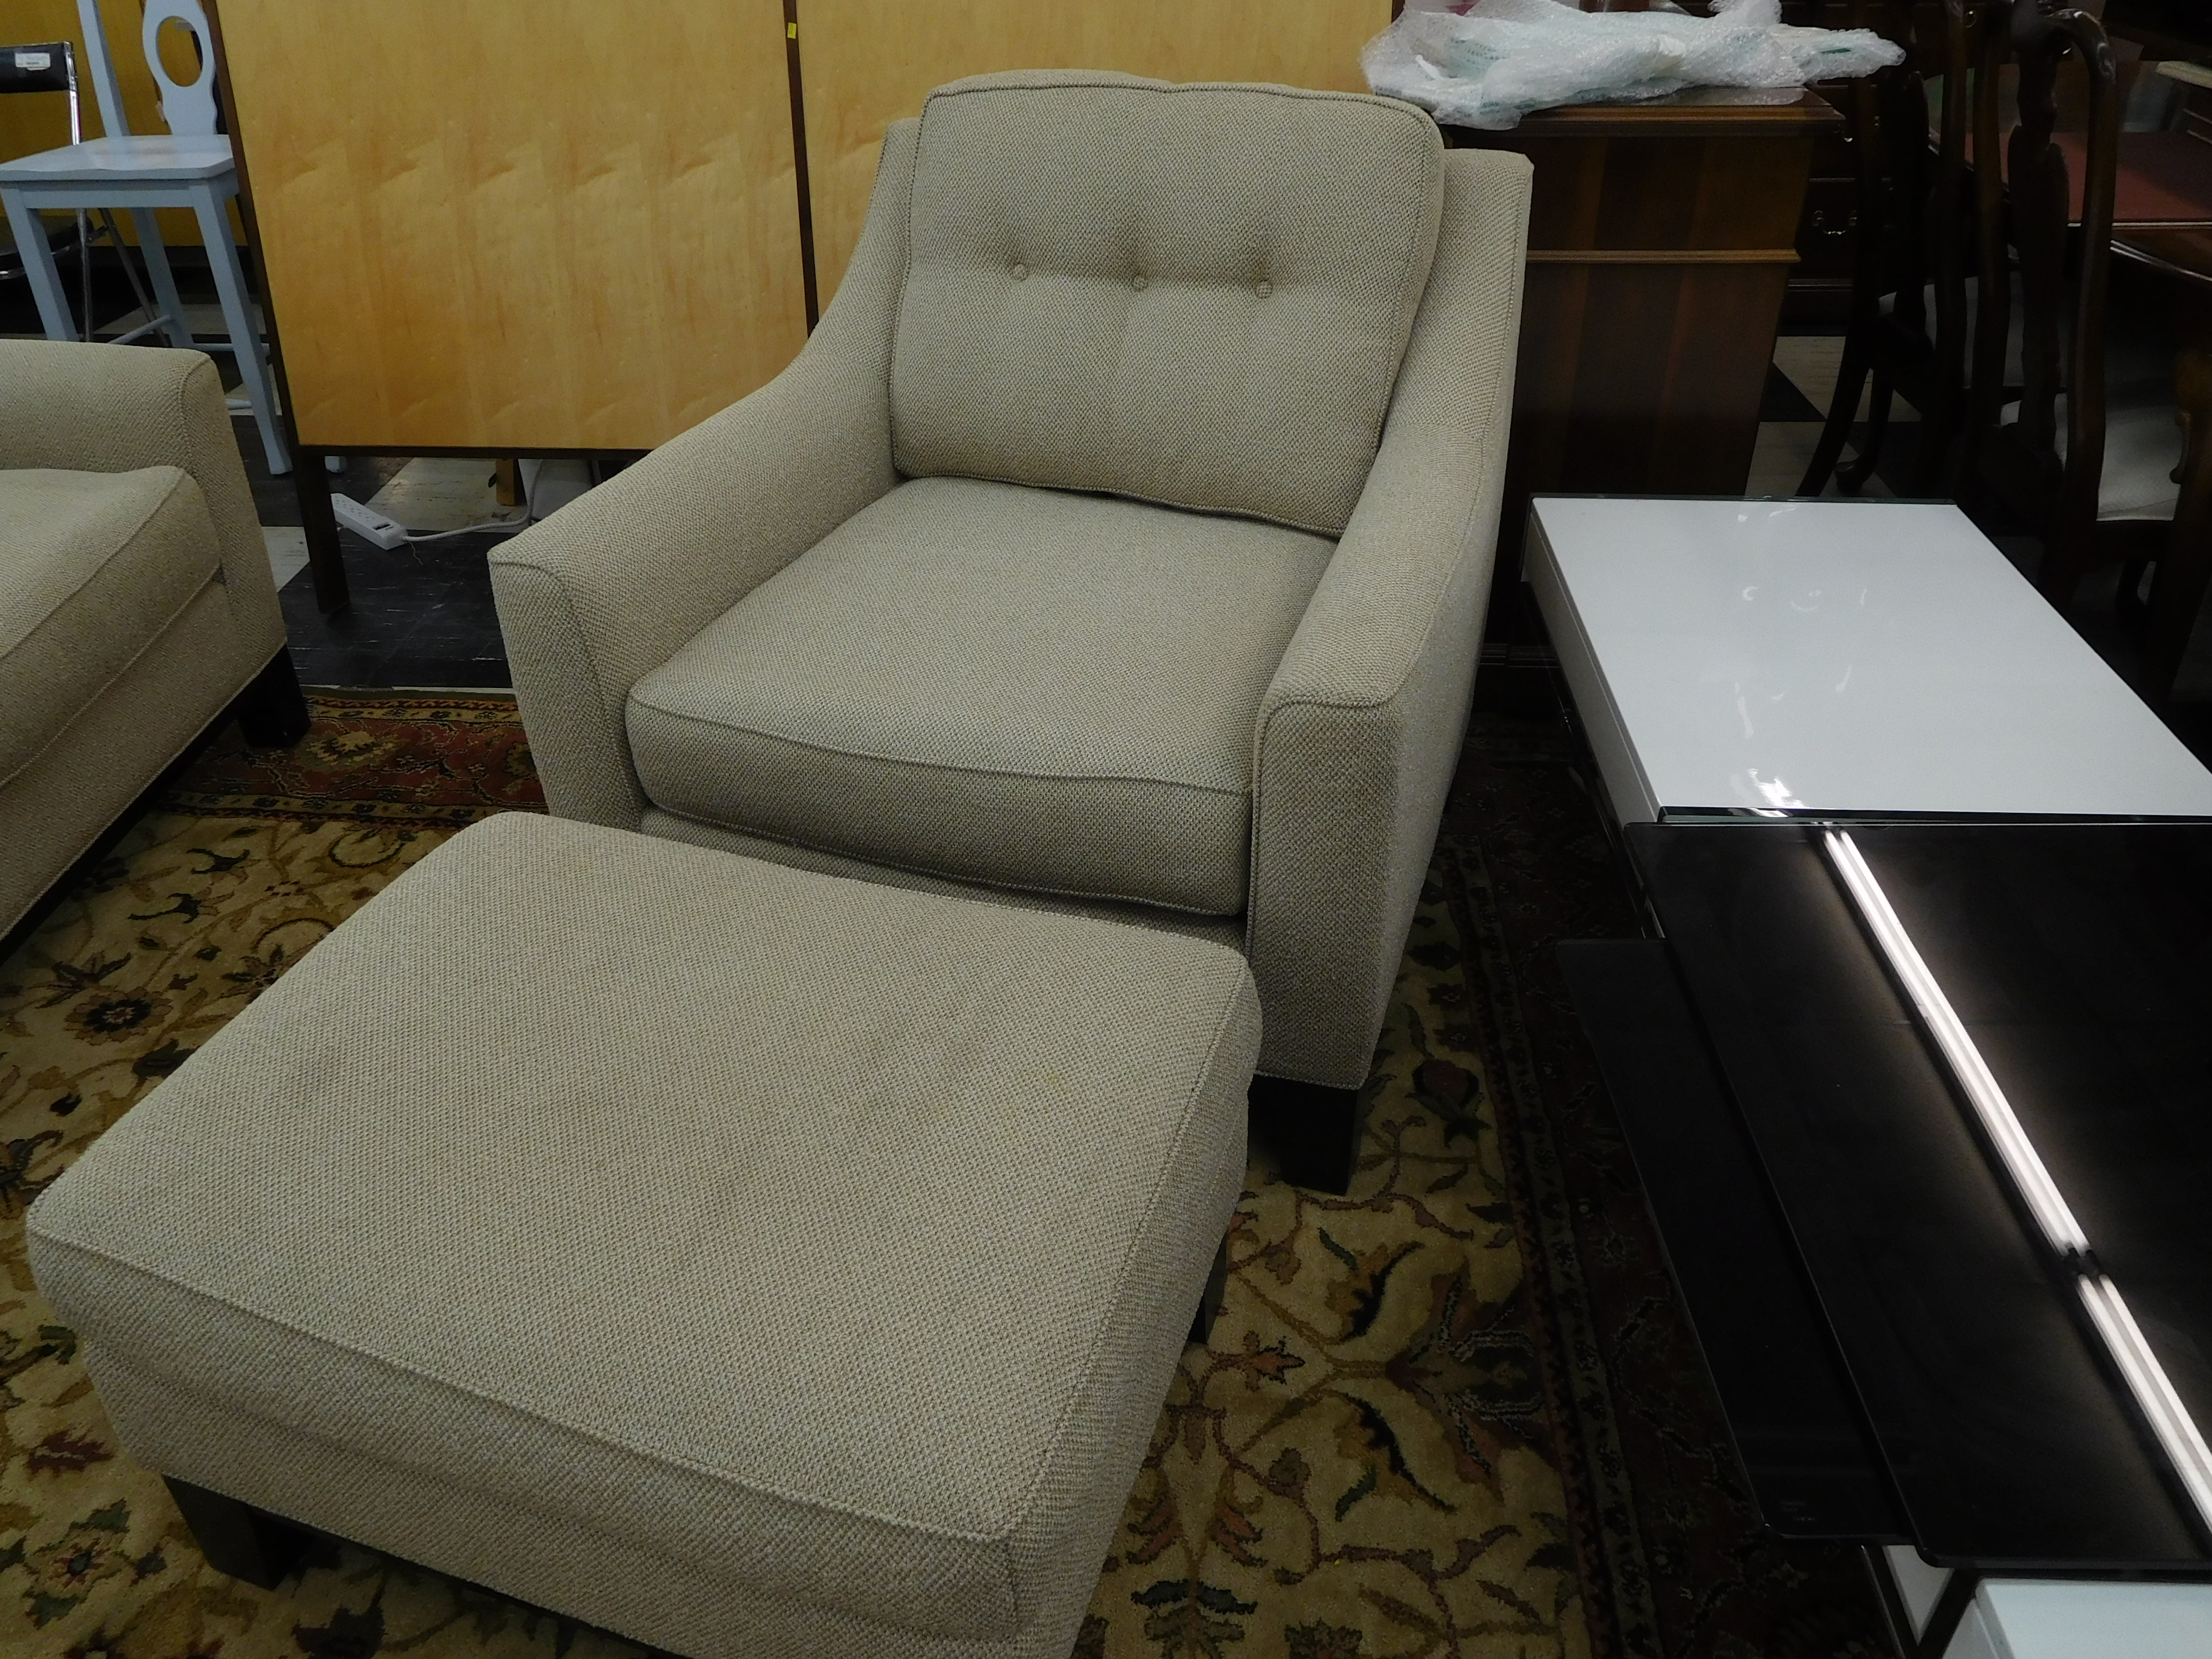 Cream Upholstered Lounge Chair With Ottoman